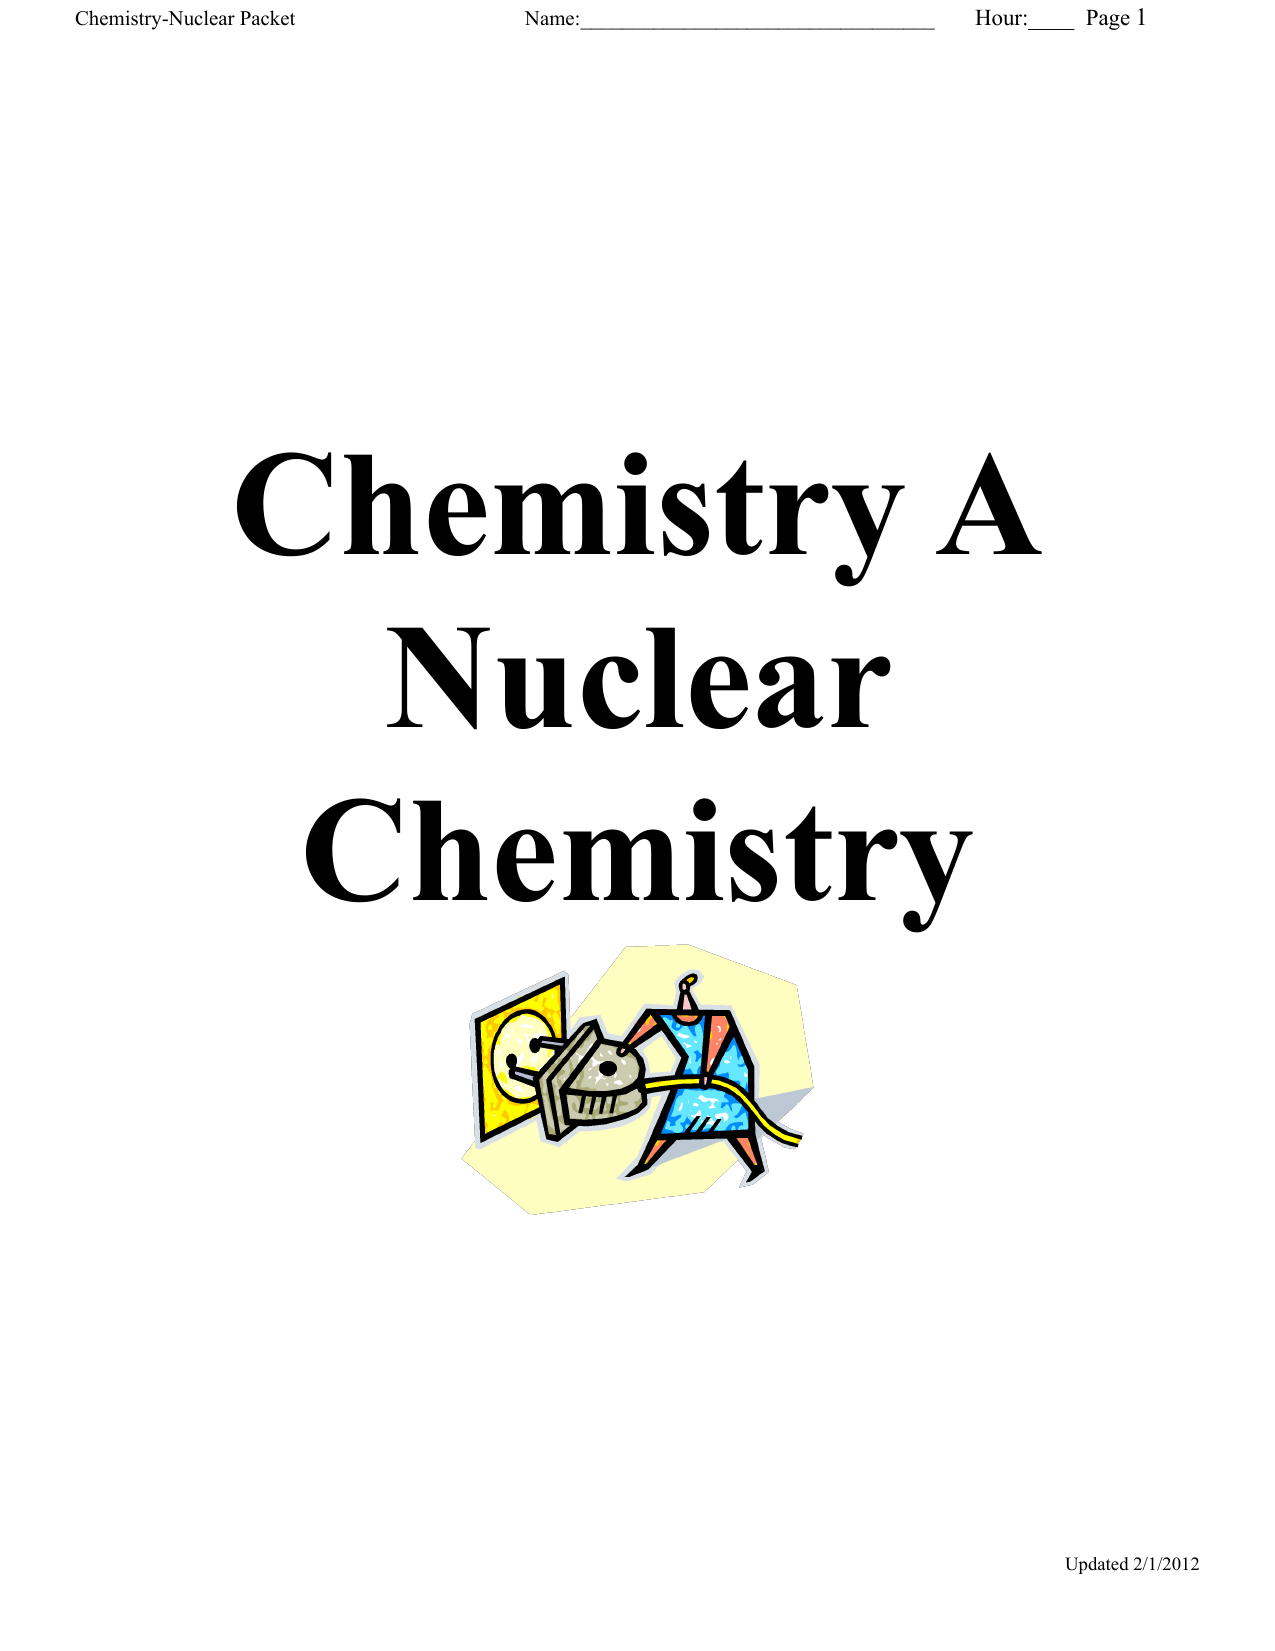 Nuclear Chemistry Packet